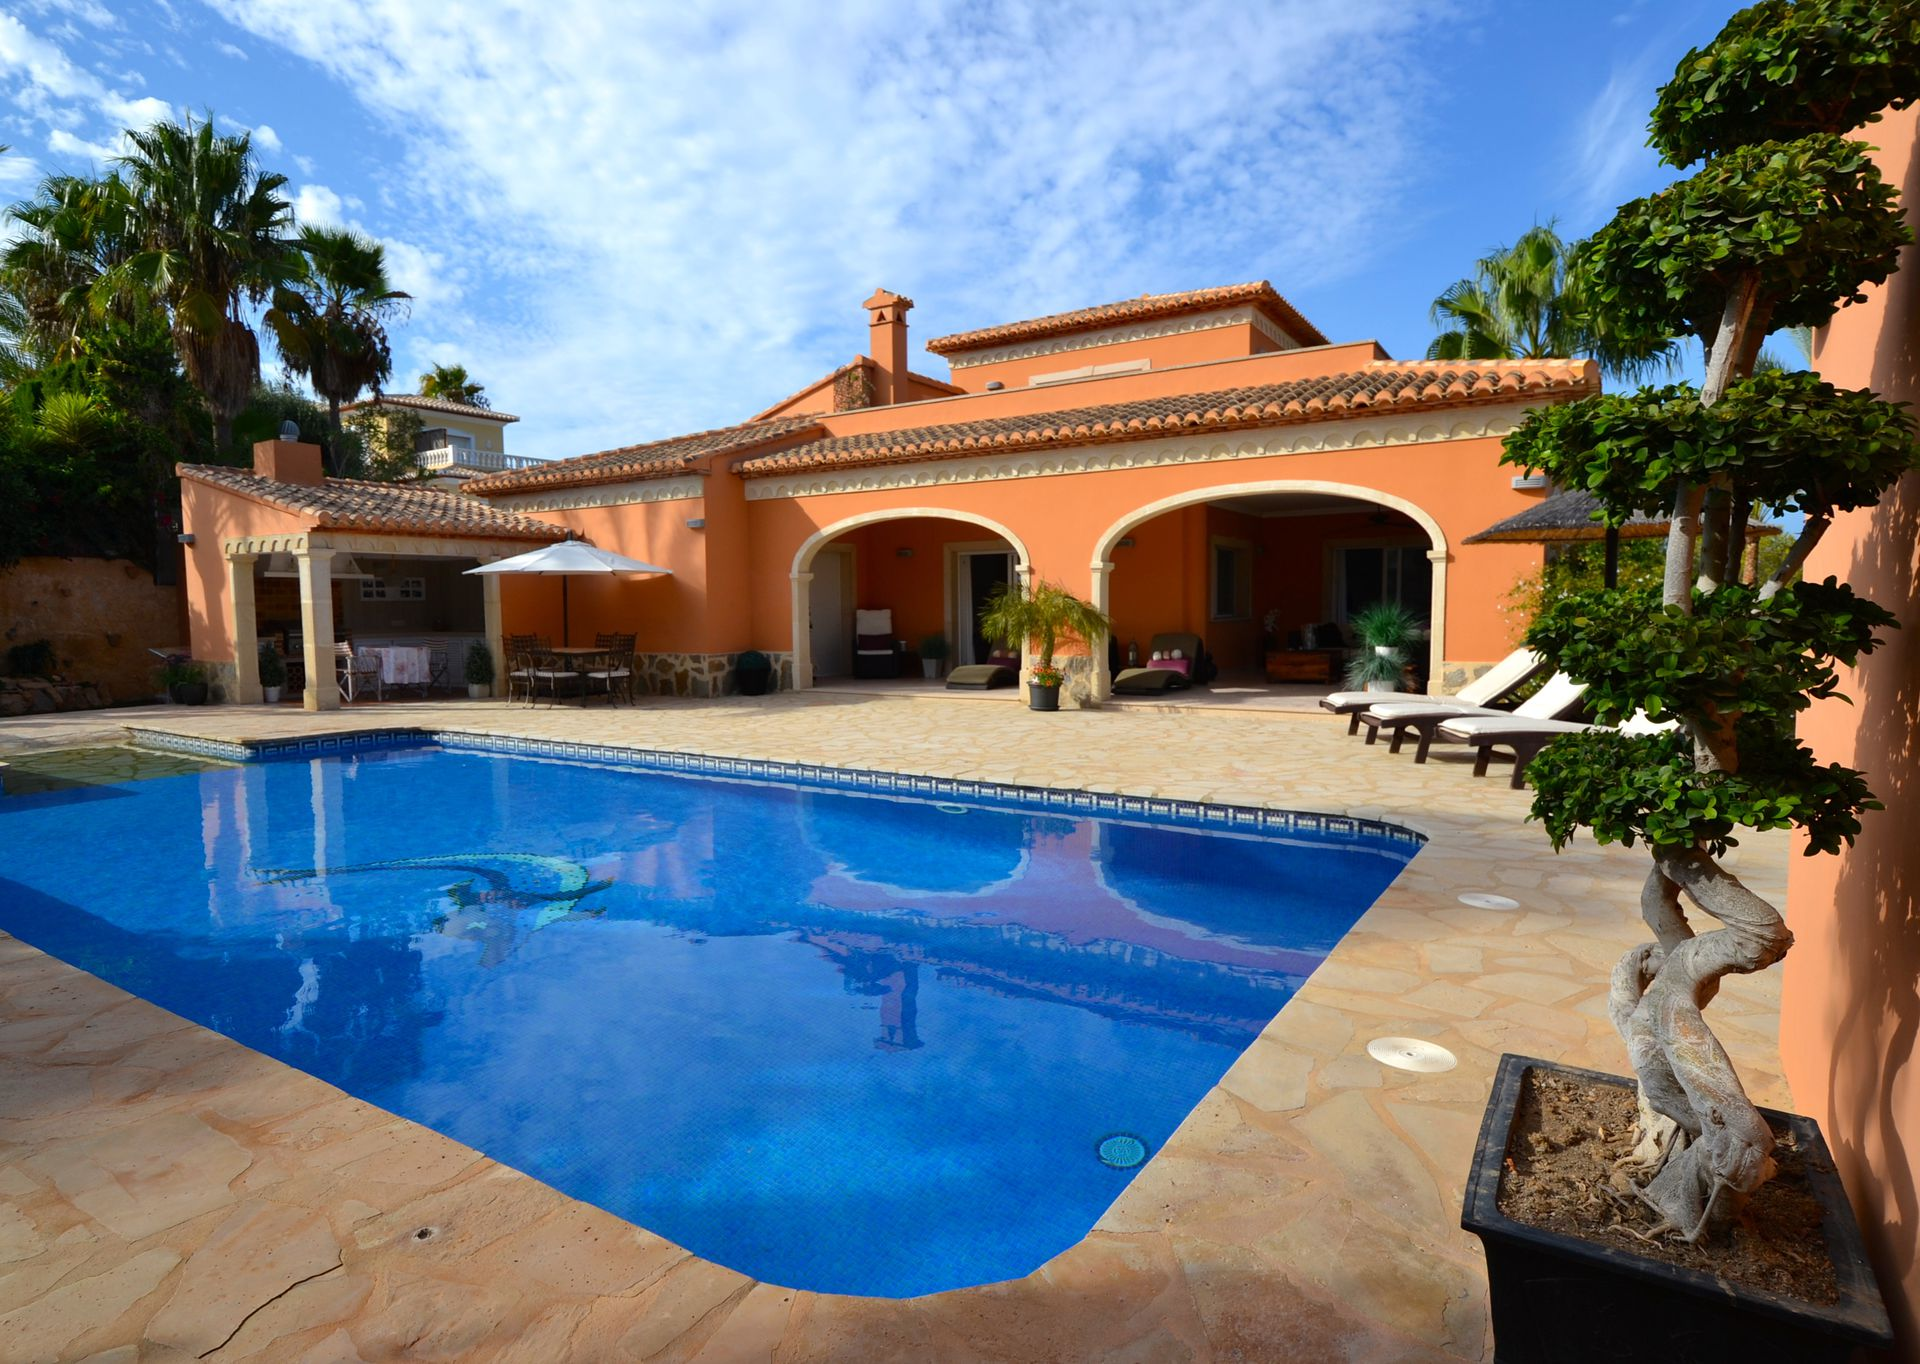 Lovely villa with pool, Jacuzzi & home gym Xabia Javea Spain - Home ...